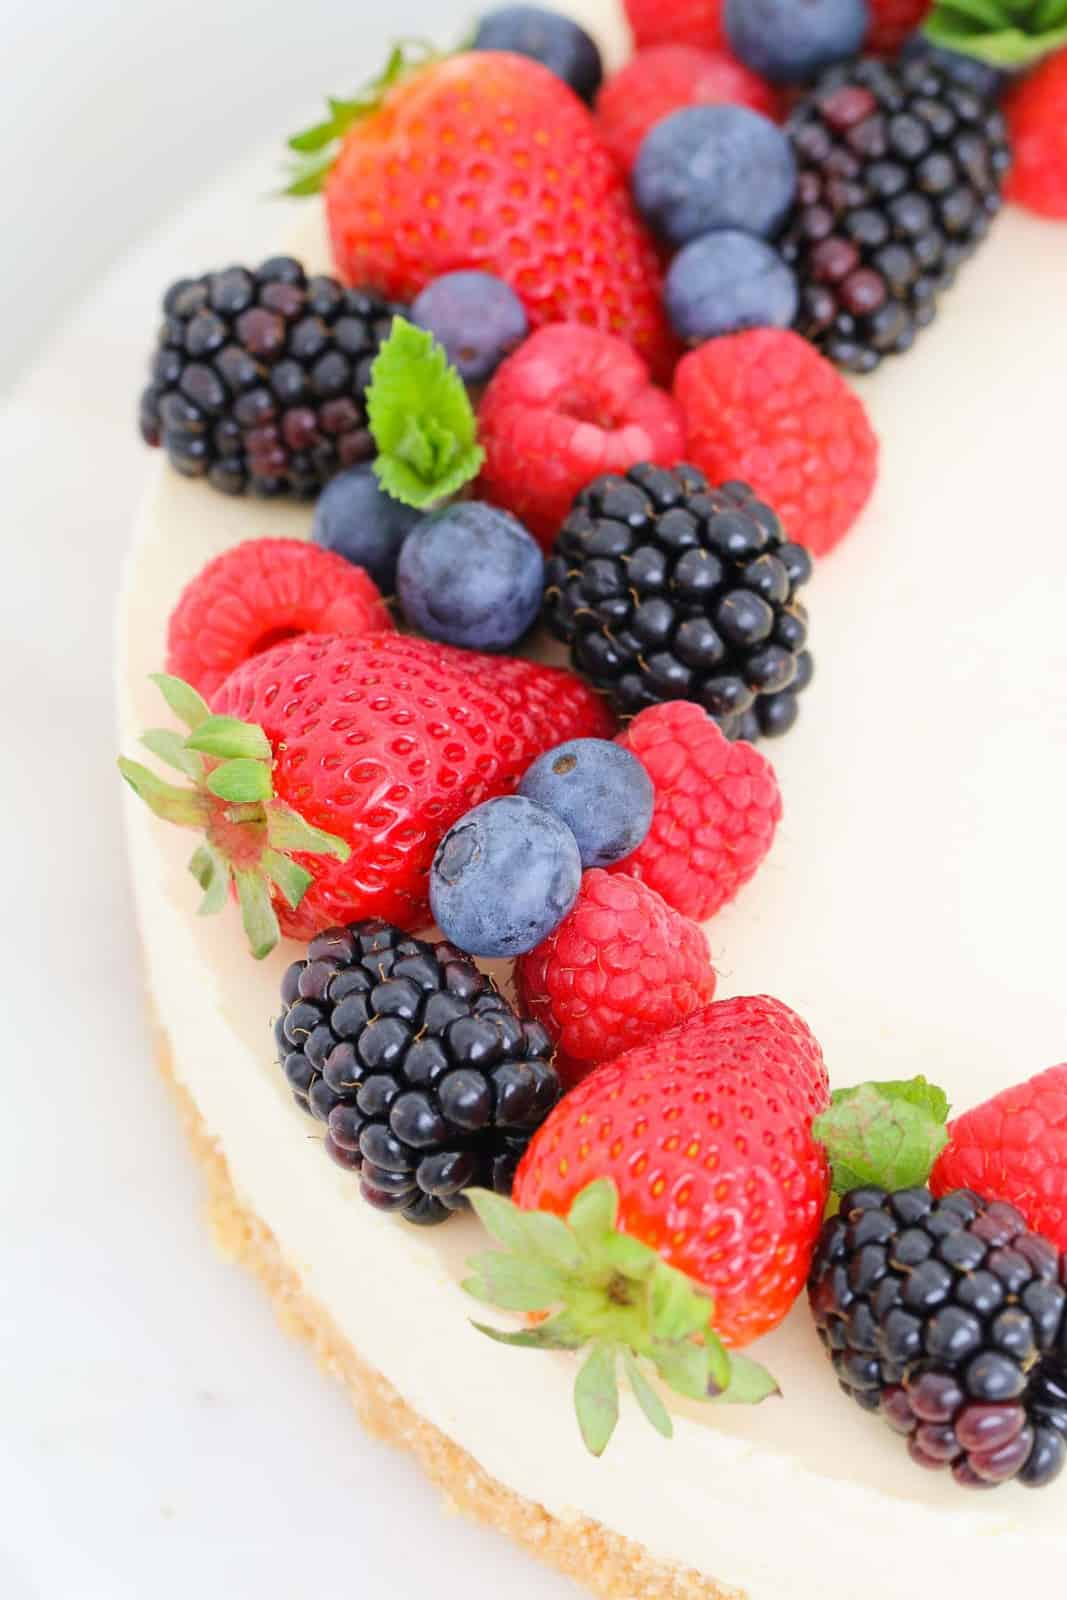 A no bake lemon cheesecake decorated with fresh berries.